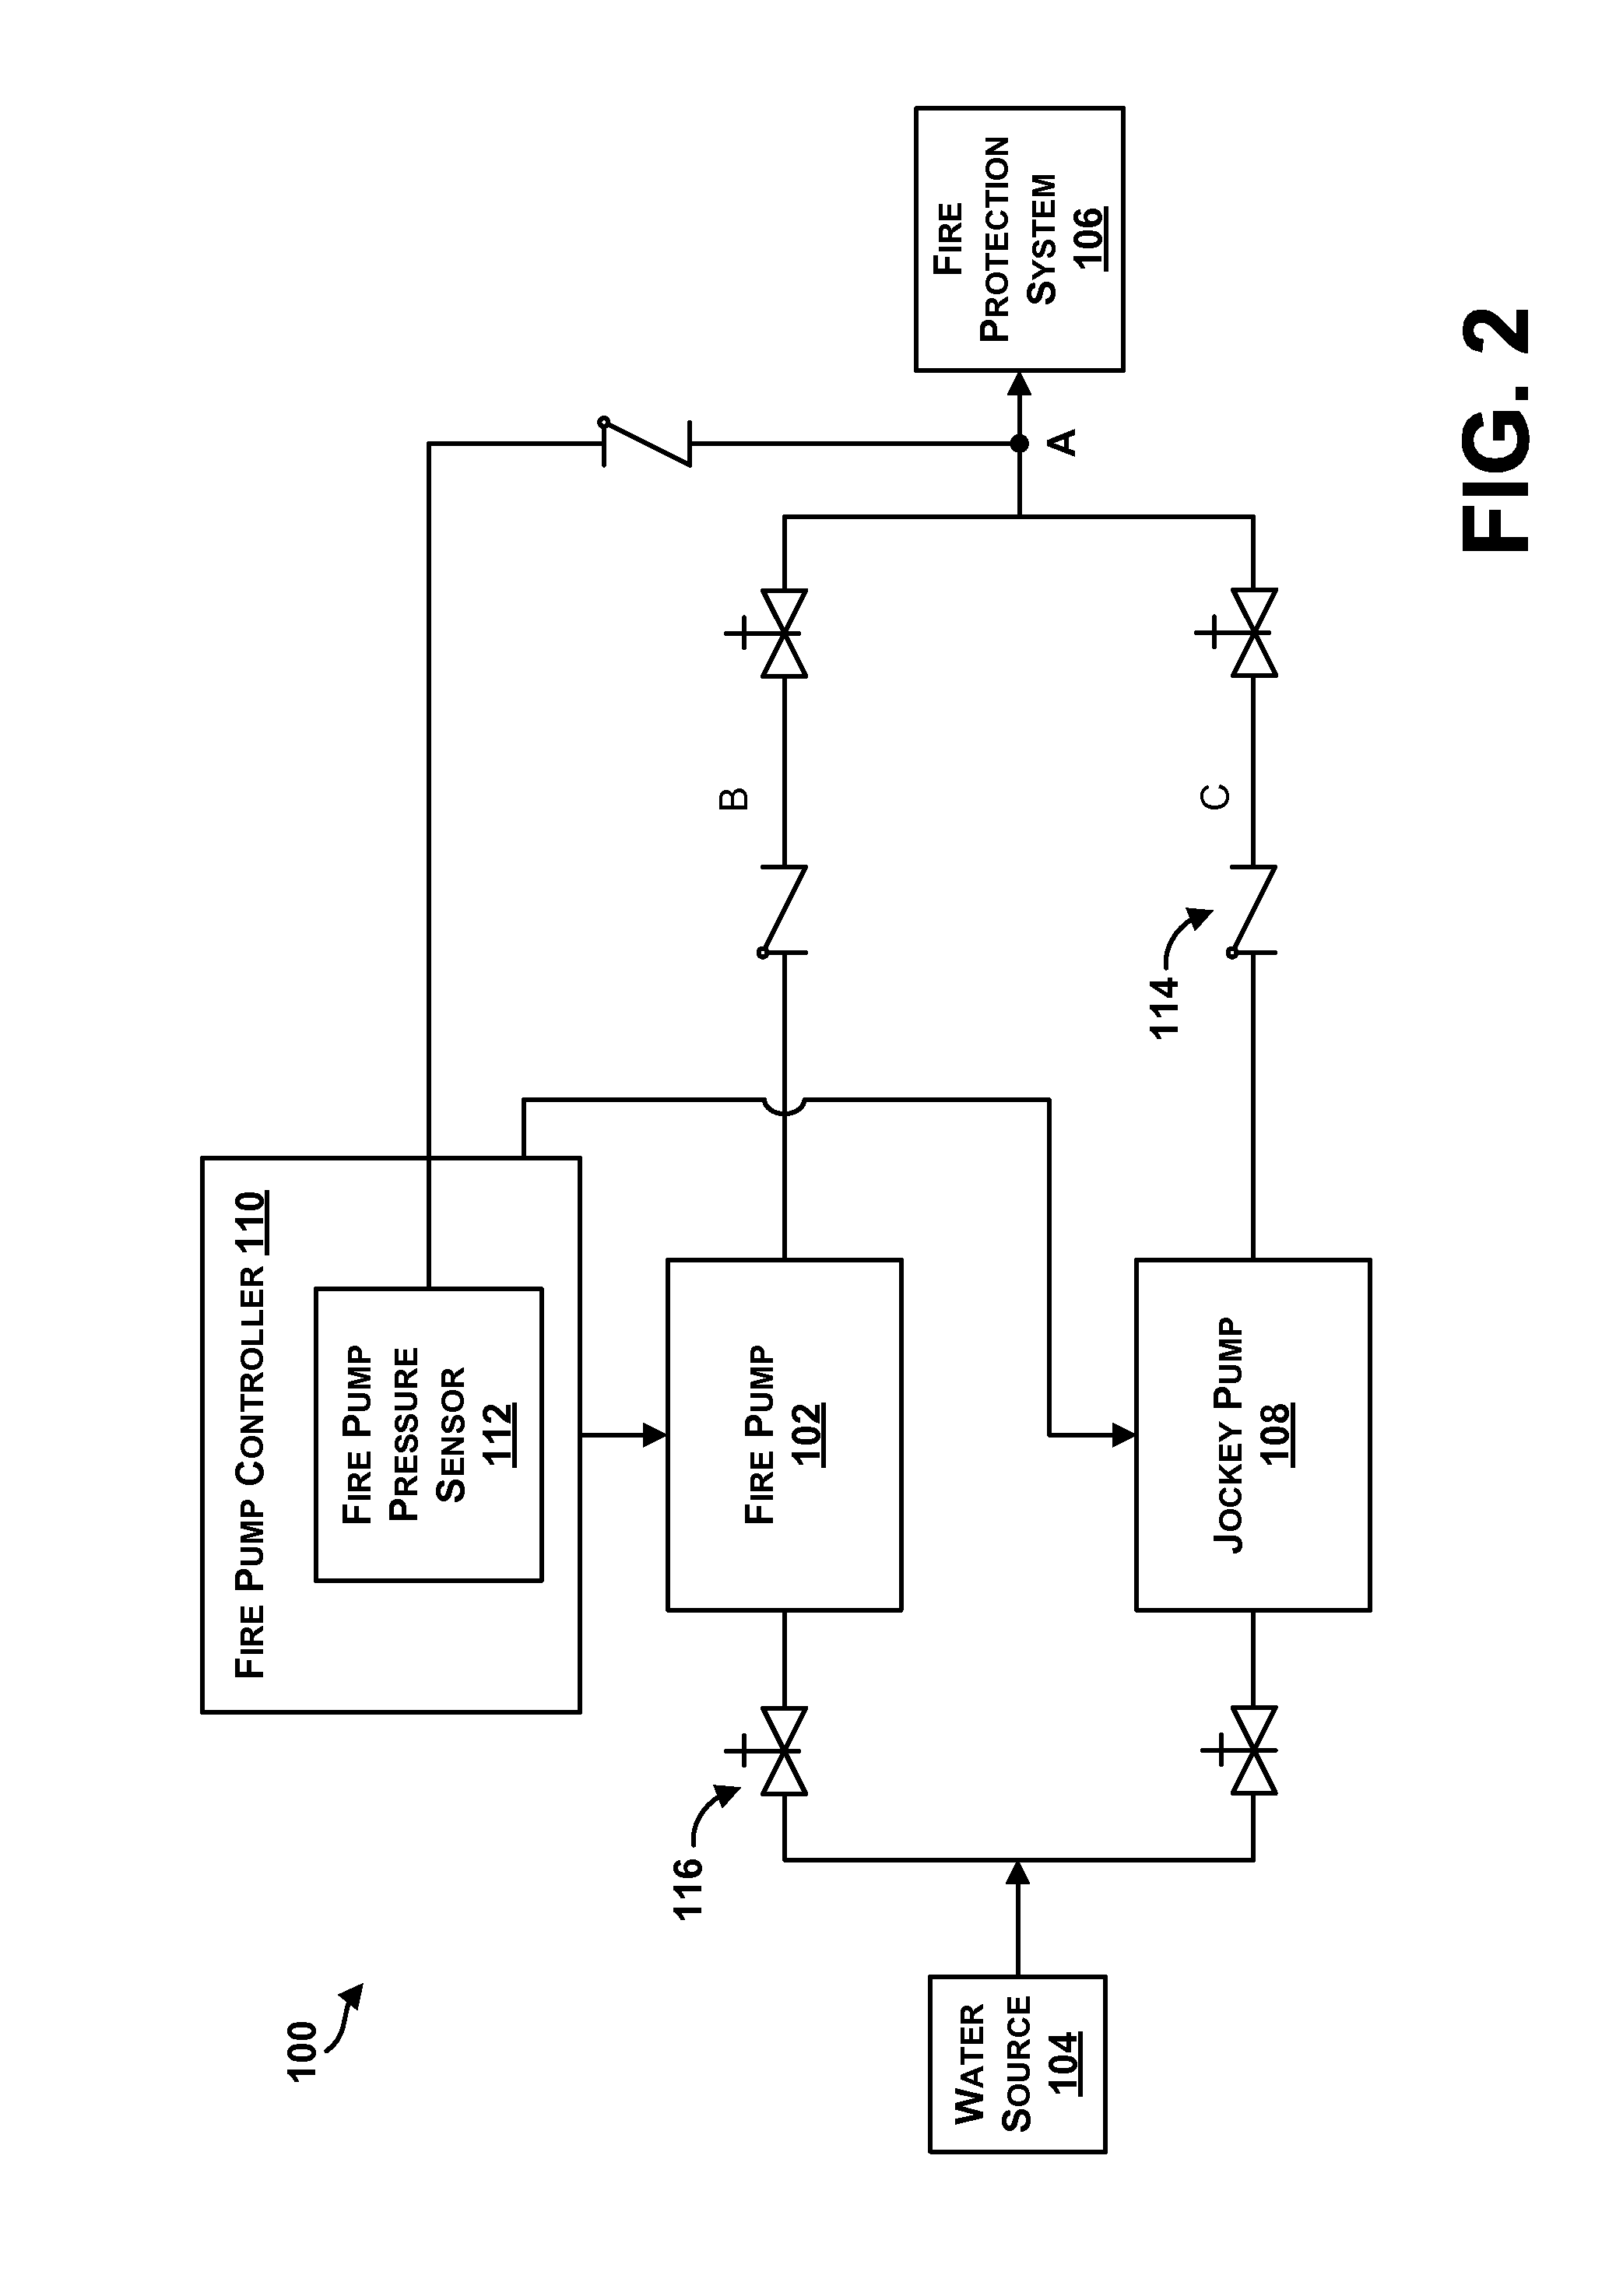 Wiring Diagram Jockey Pump : Patent us  fire pump controller configured to